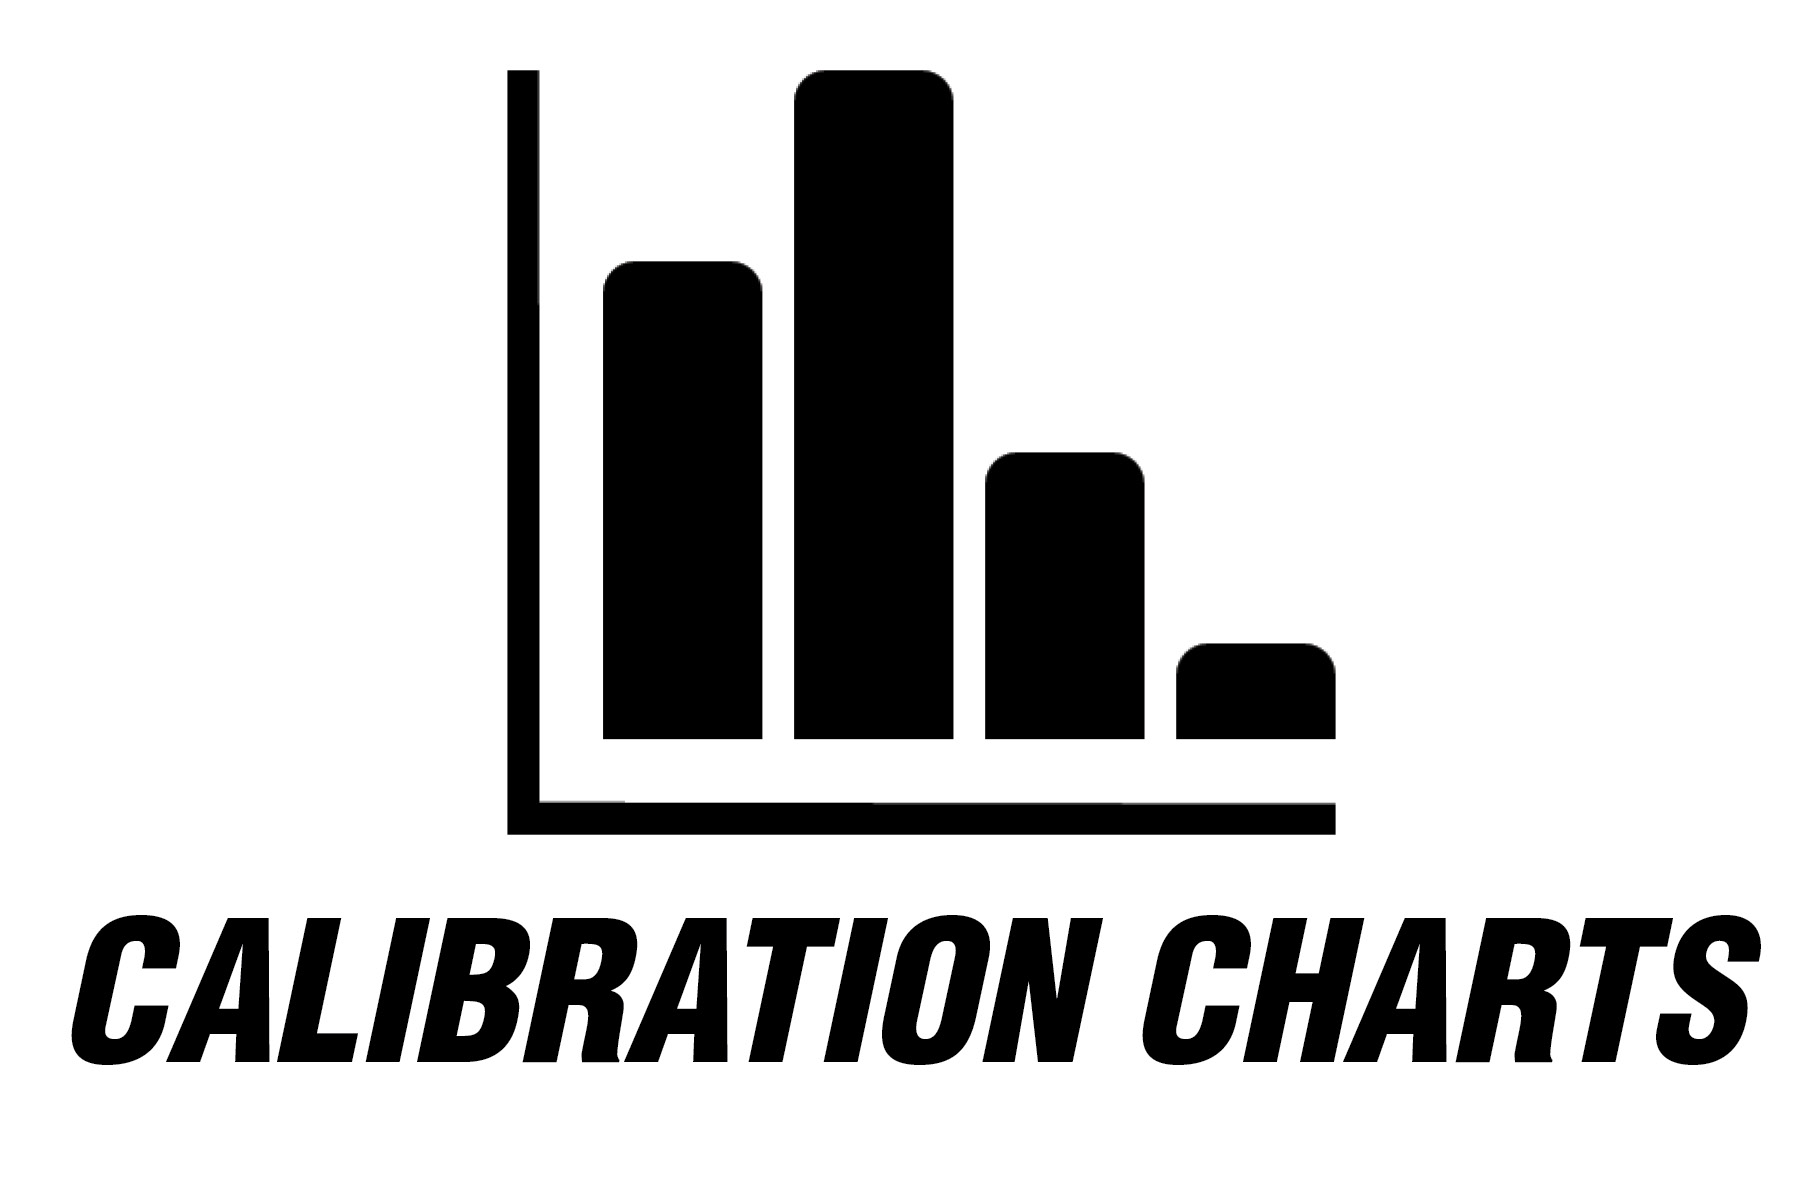 CALIBRATION CHARTS.jpg